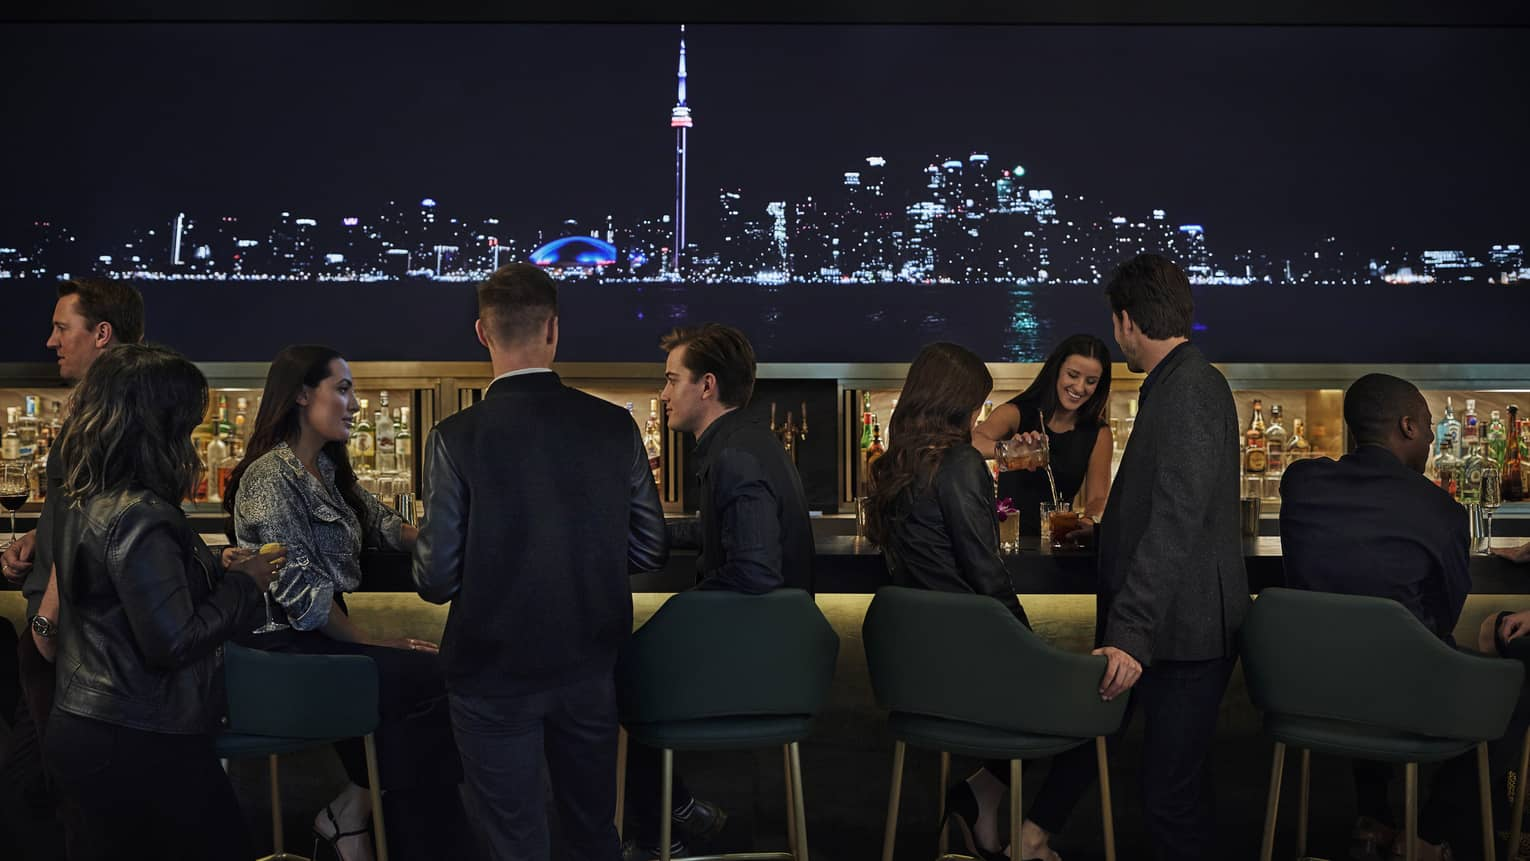 A lit up skyline of the city illuminate the bar, where guests sit and enjoy drinks